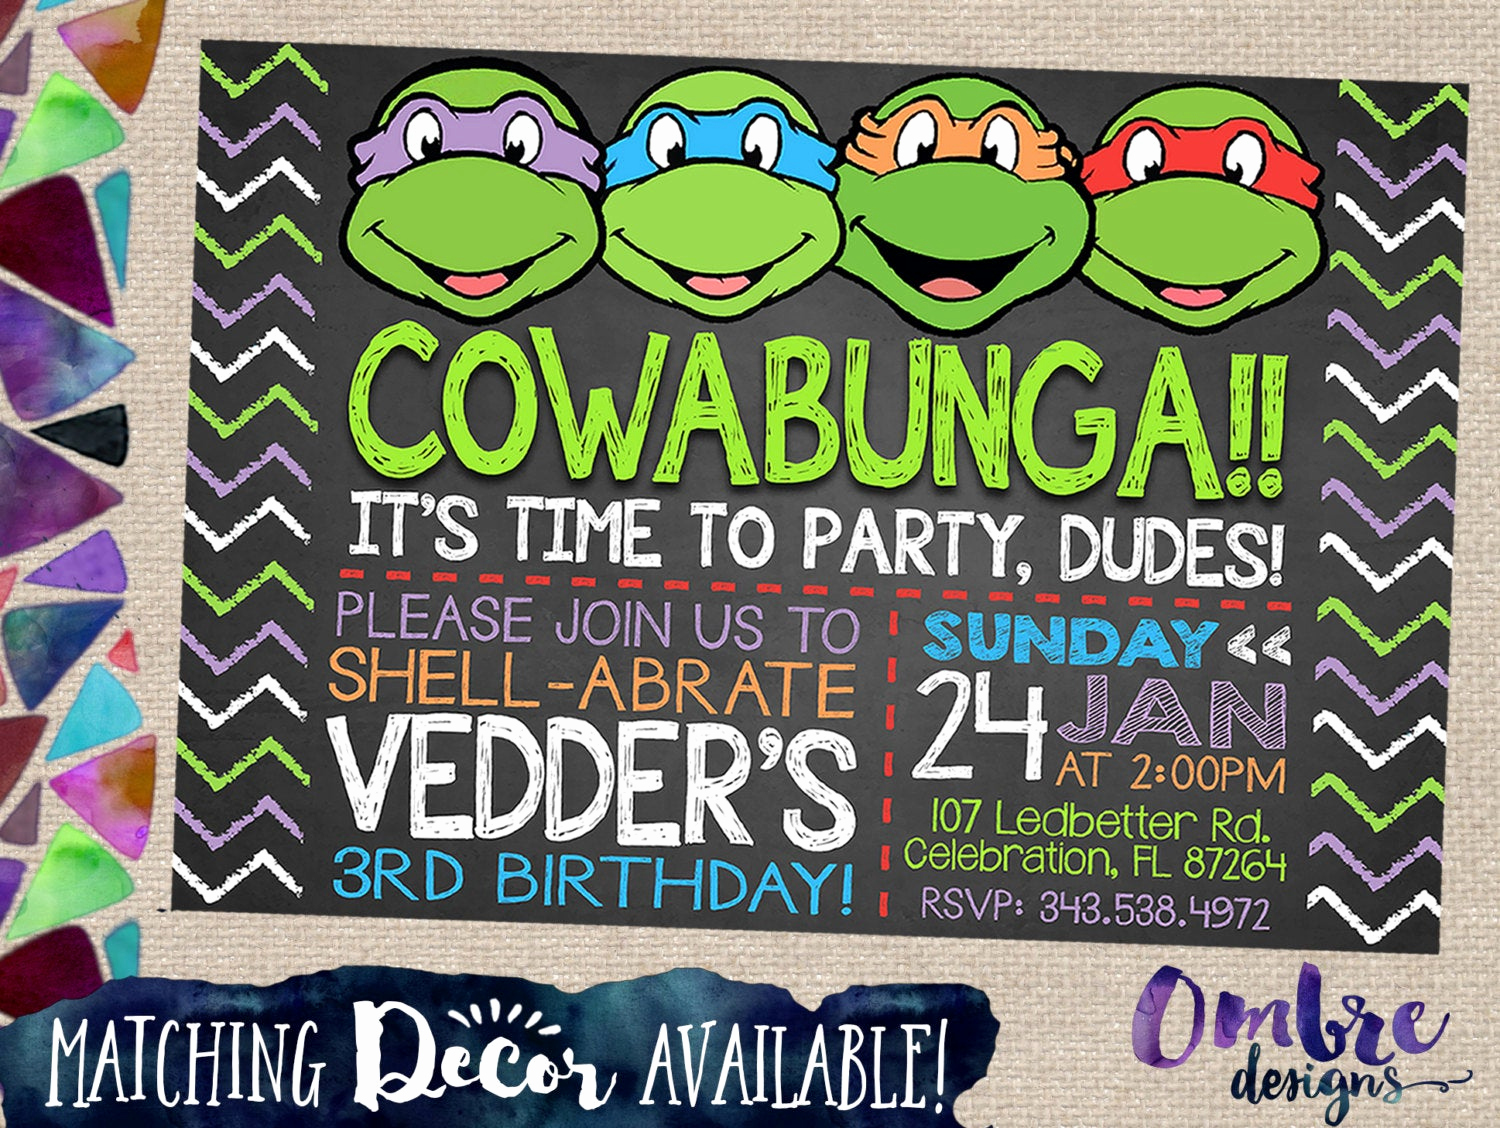 Ninja Turtles Birthday Invitation Inspirational Ninja Turtle Invitation Ninja Turtles Invite Tmnt Party